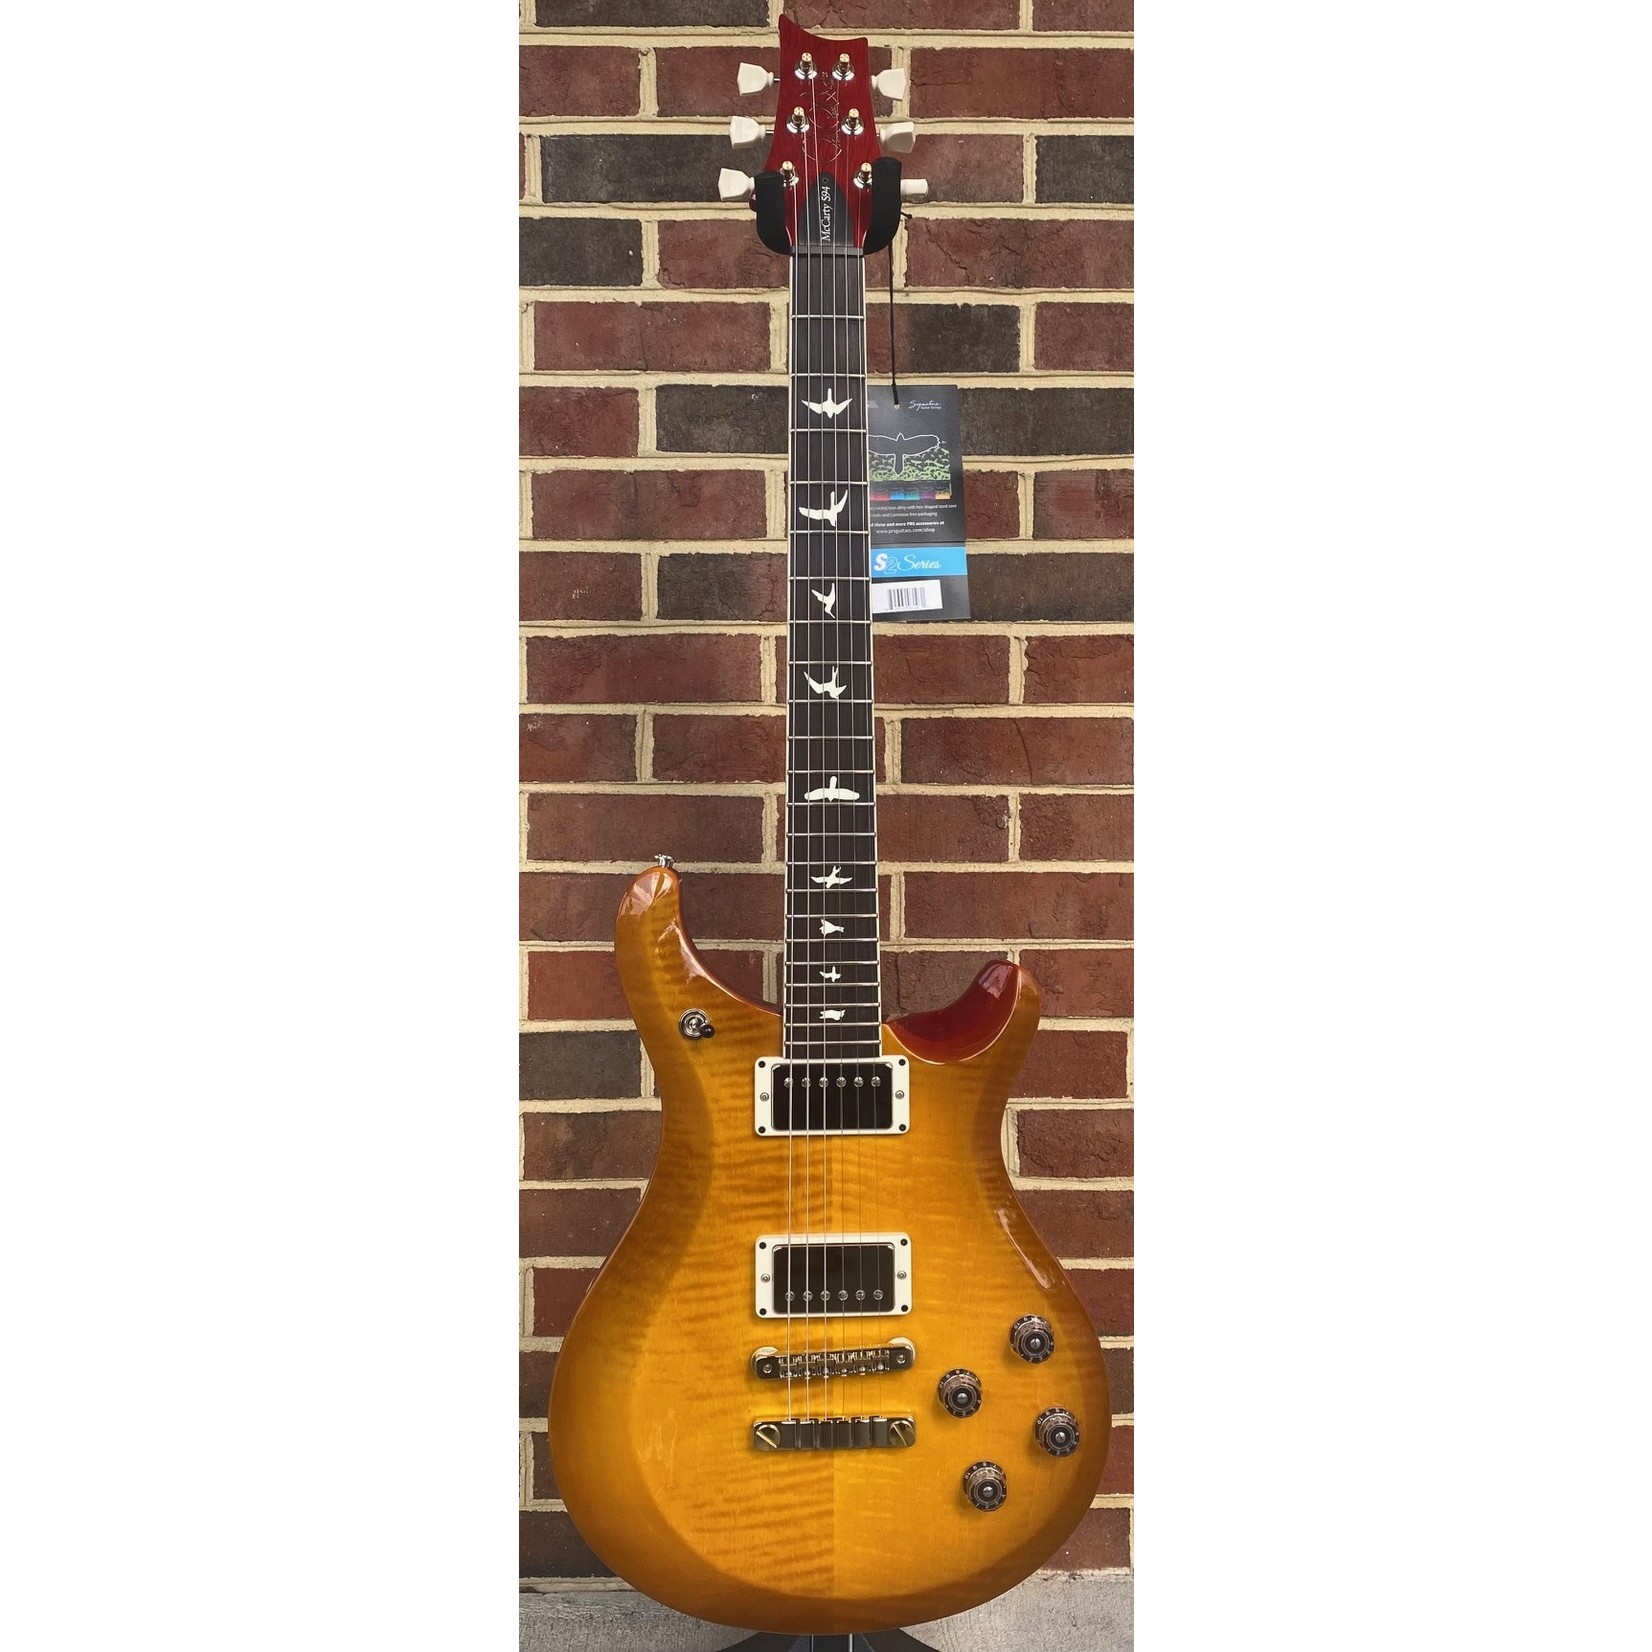 Paul Reed Smith Paul Reed Smith S2 McCarty 594, McCarty Sunburst, Pattern Vintage Neck, Gig Bag